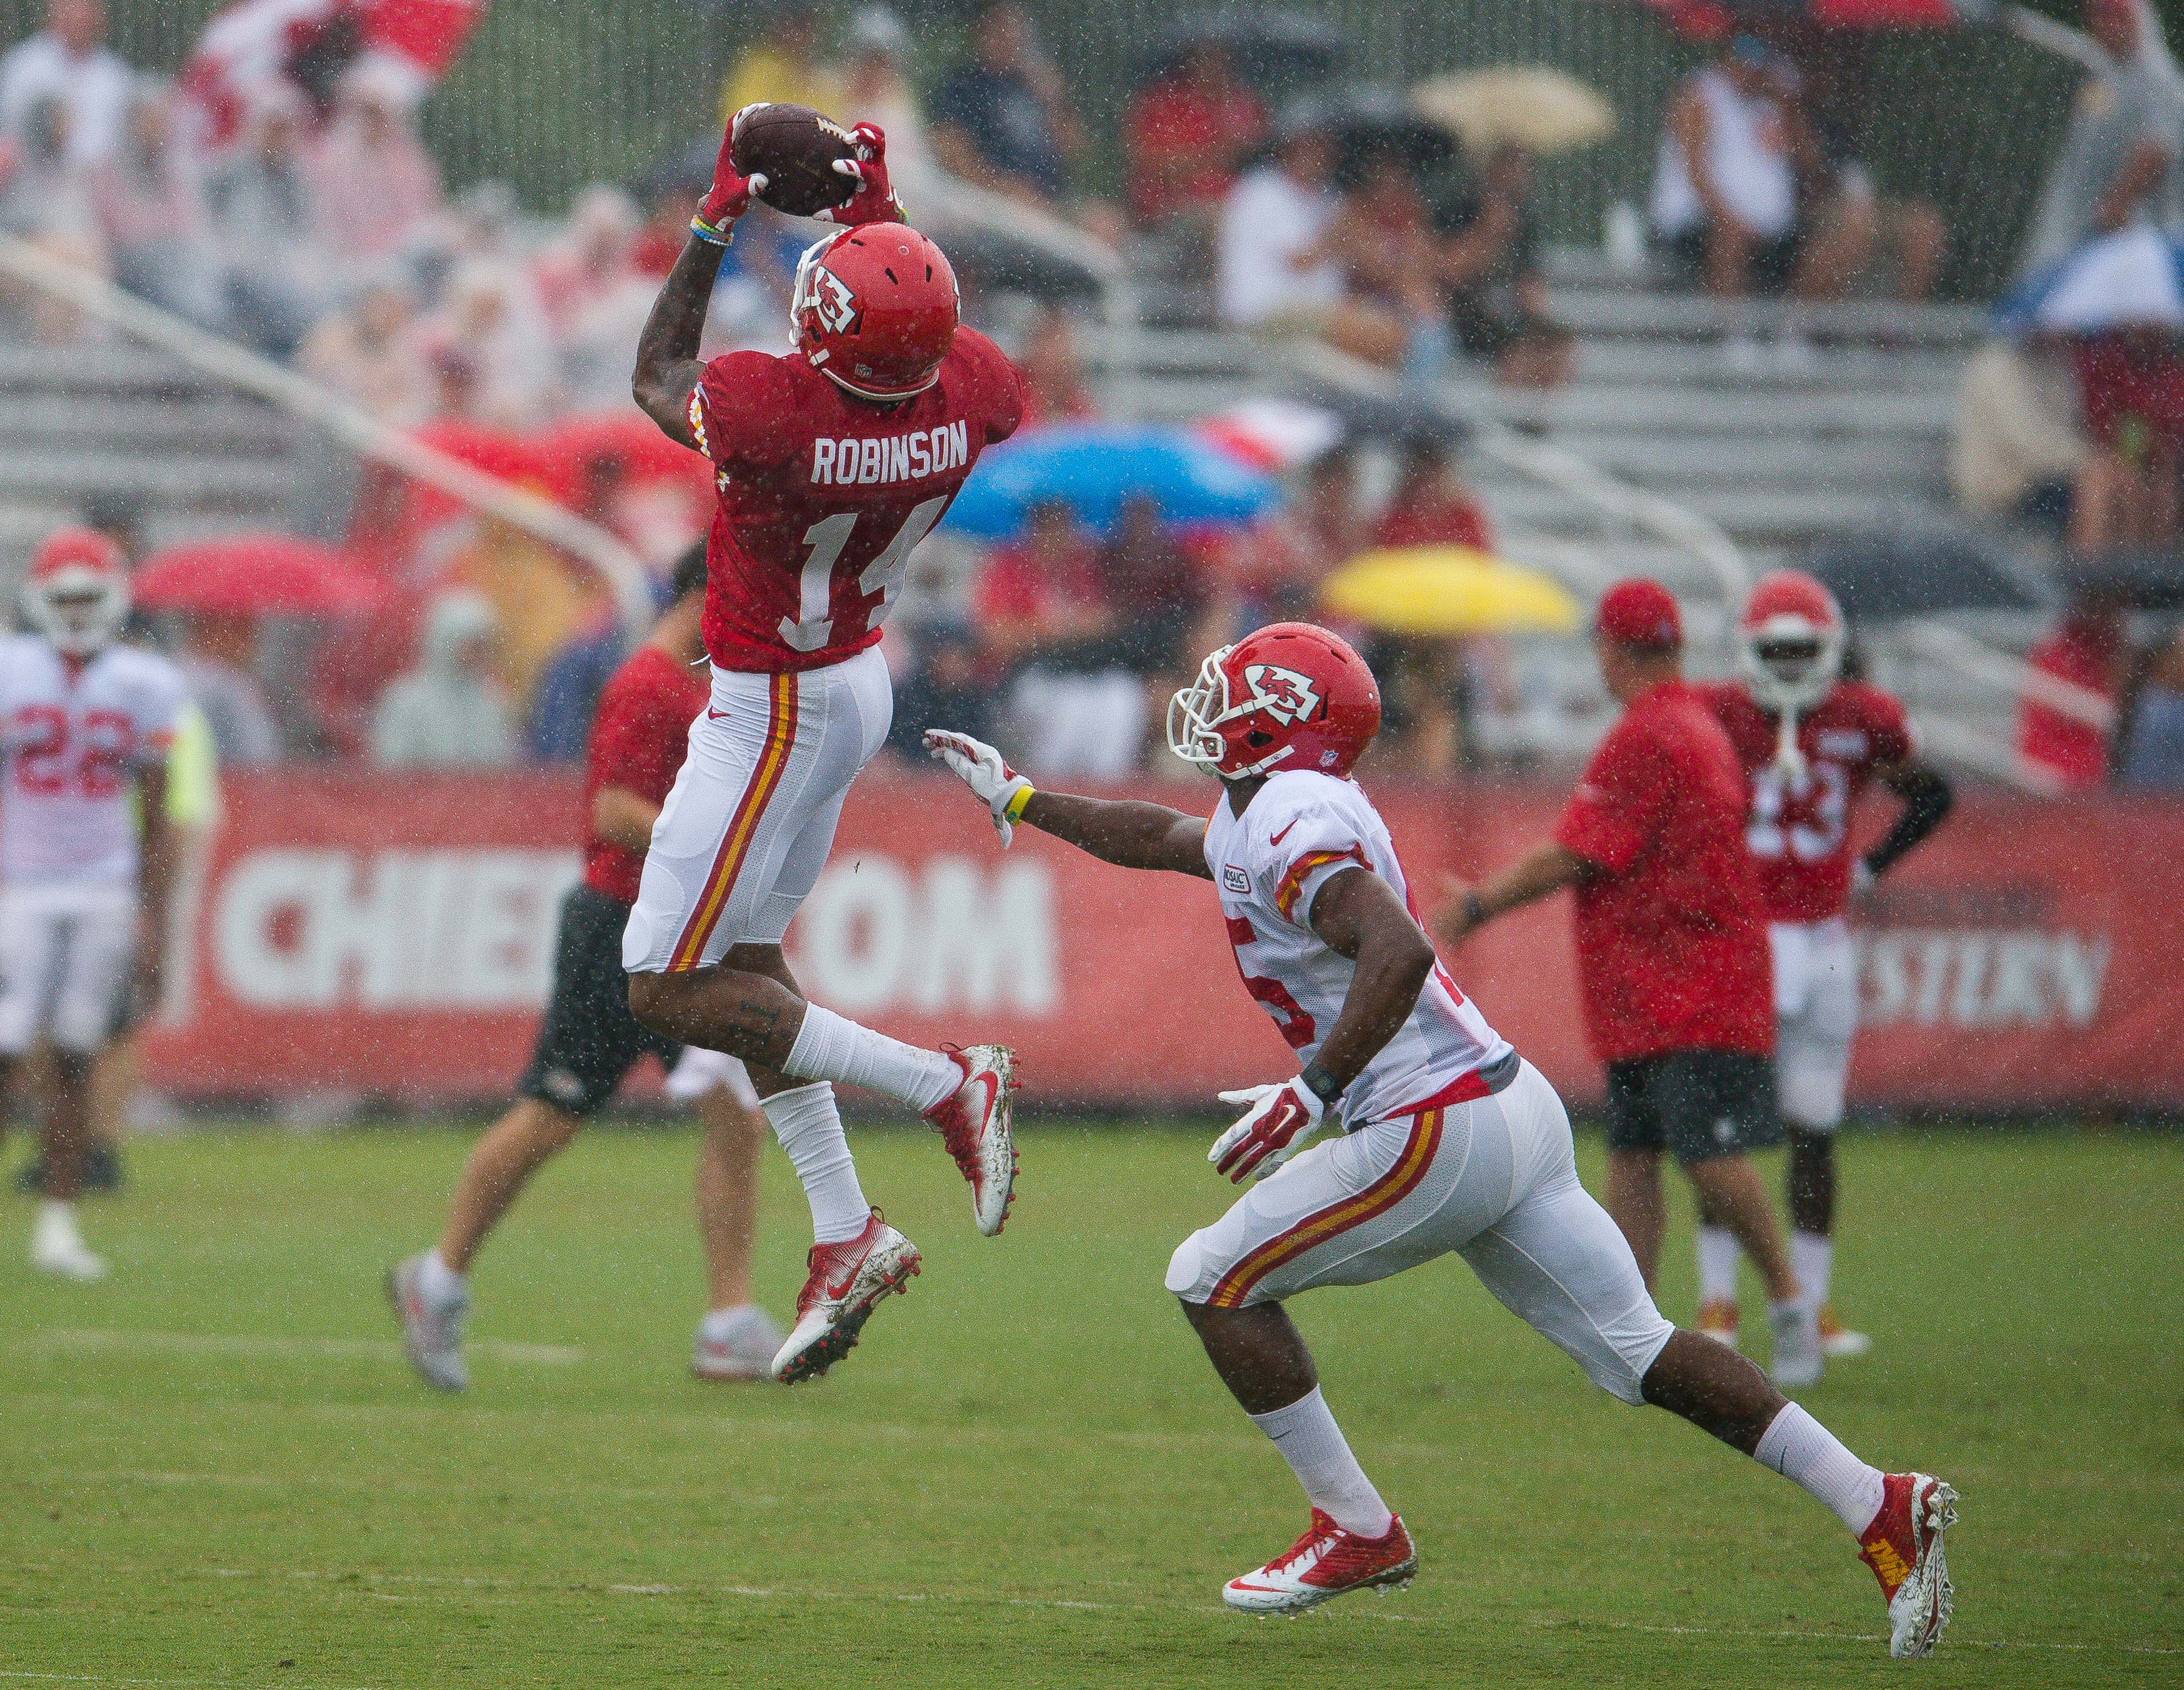 Kansas City Chiefs wide receiver Demarcus Robinson leaps for a catch during NFL football training camp, Sunday, Aug. 7, 2016, in St. Joseph, Mo. (Dougal Brownlie/The St. Joseph News-Press via AP)